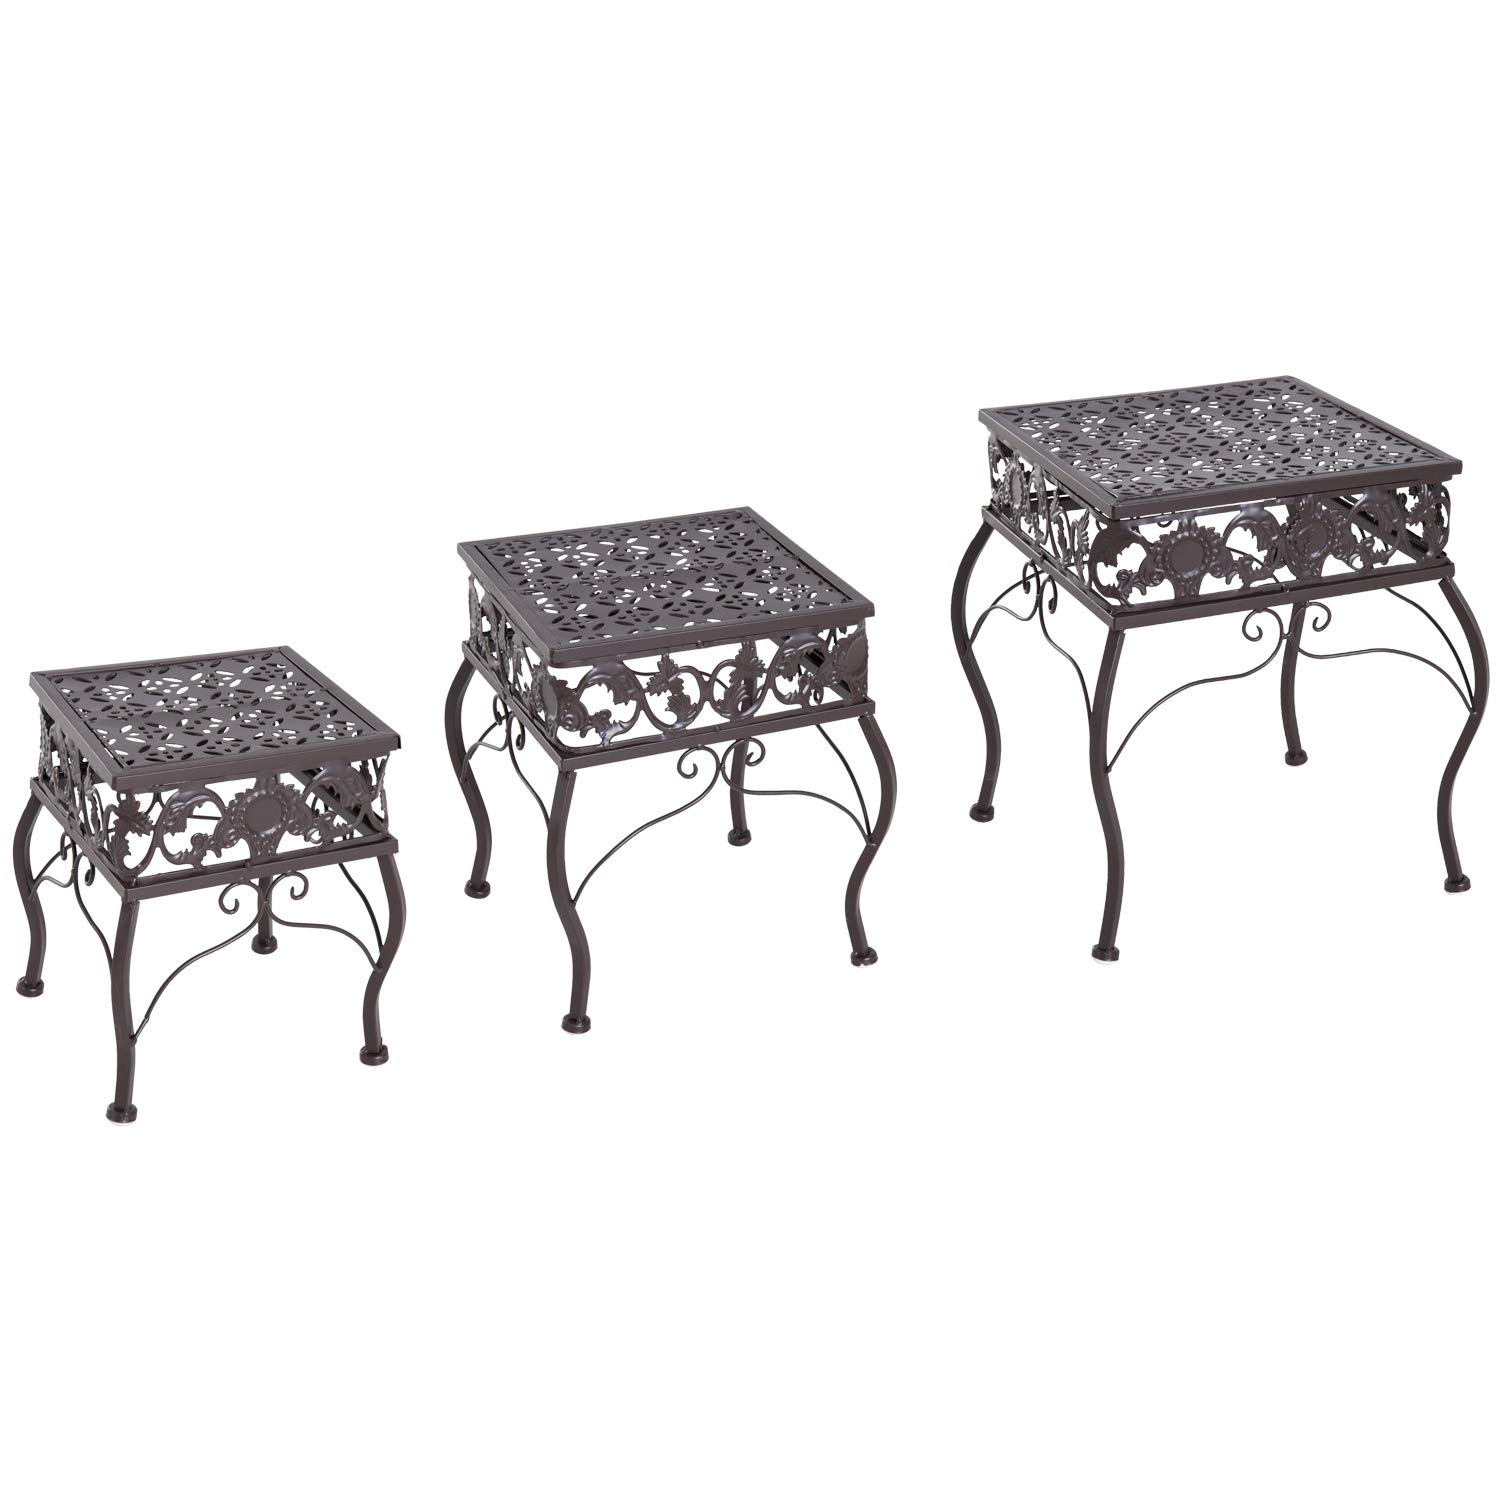 Outsunny 3 Piece Decorative Metal Outdoor Plant Stand Set